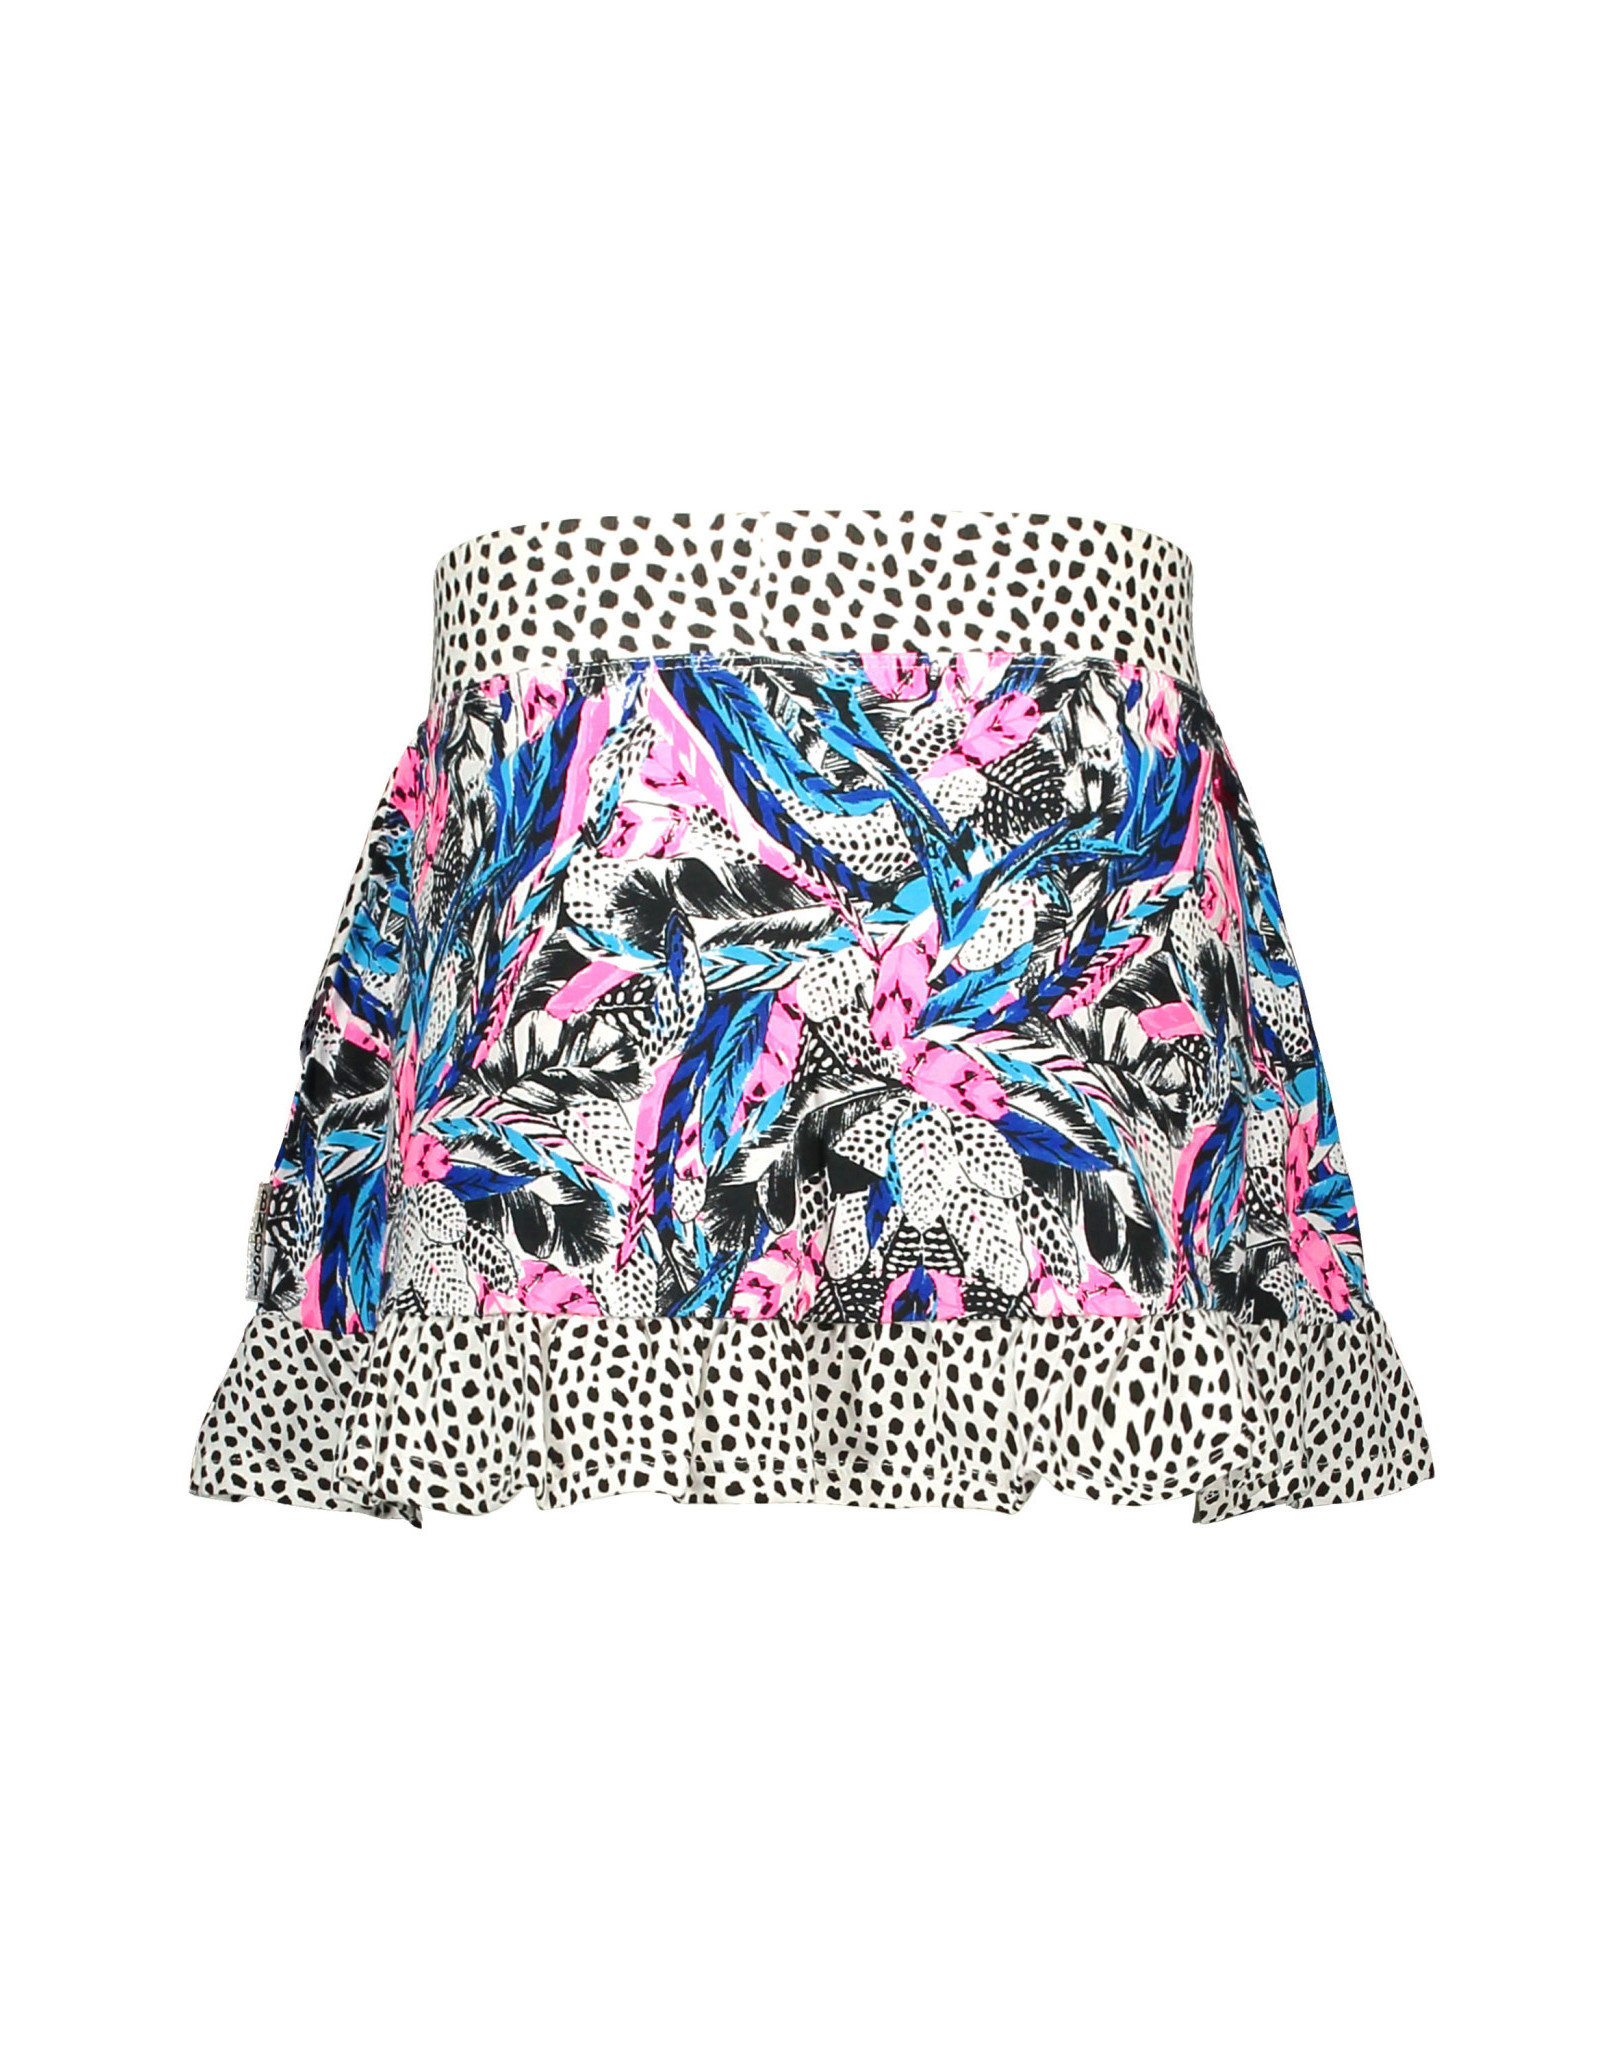 B-nosy Girls skirt with contrast ruffle 037 Fash feathers